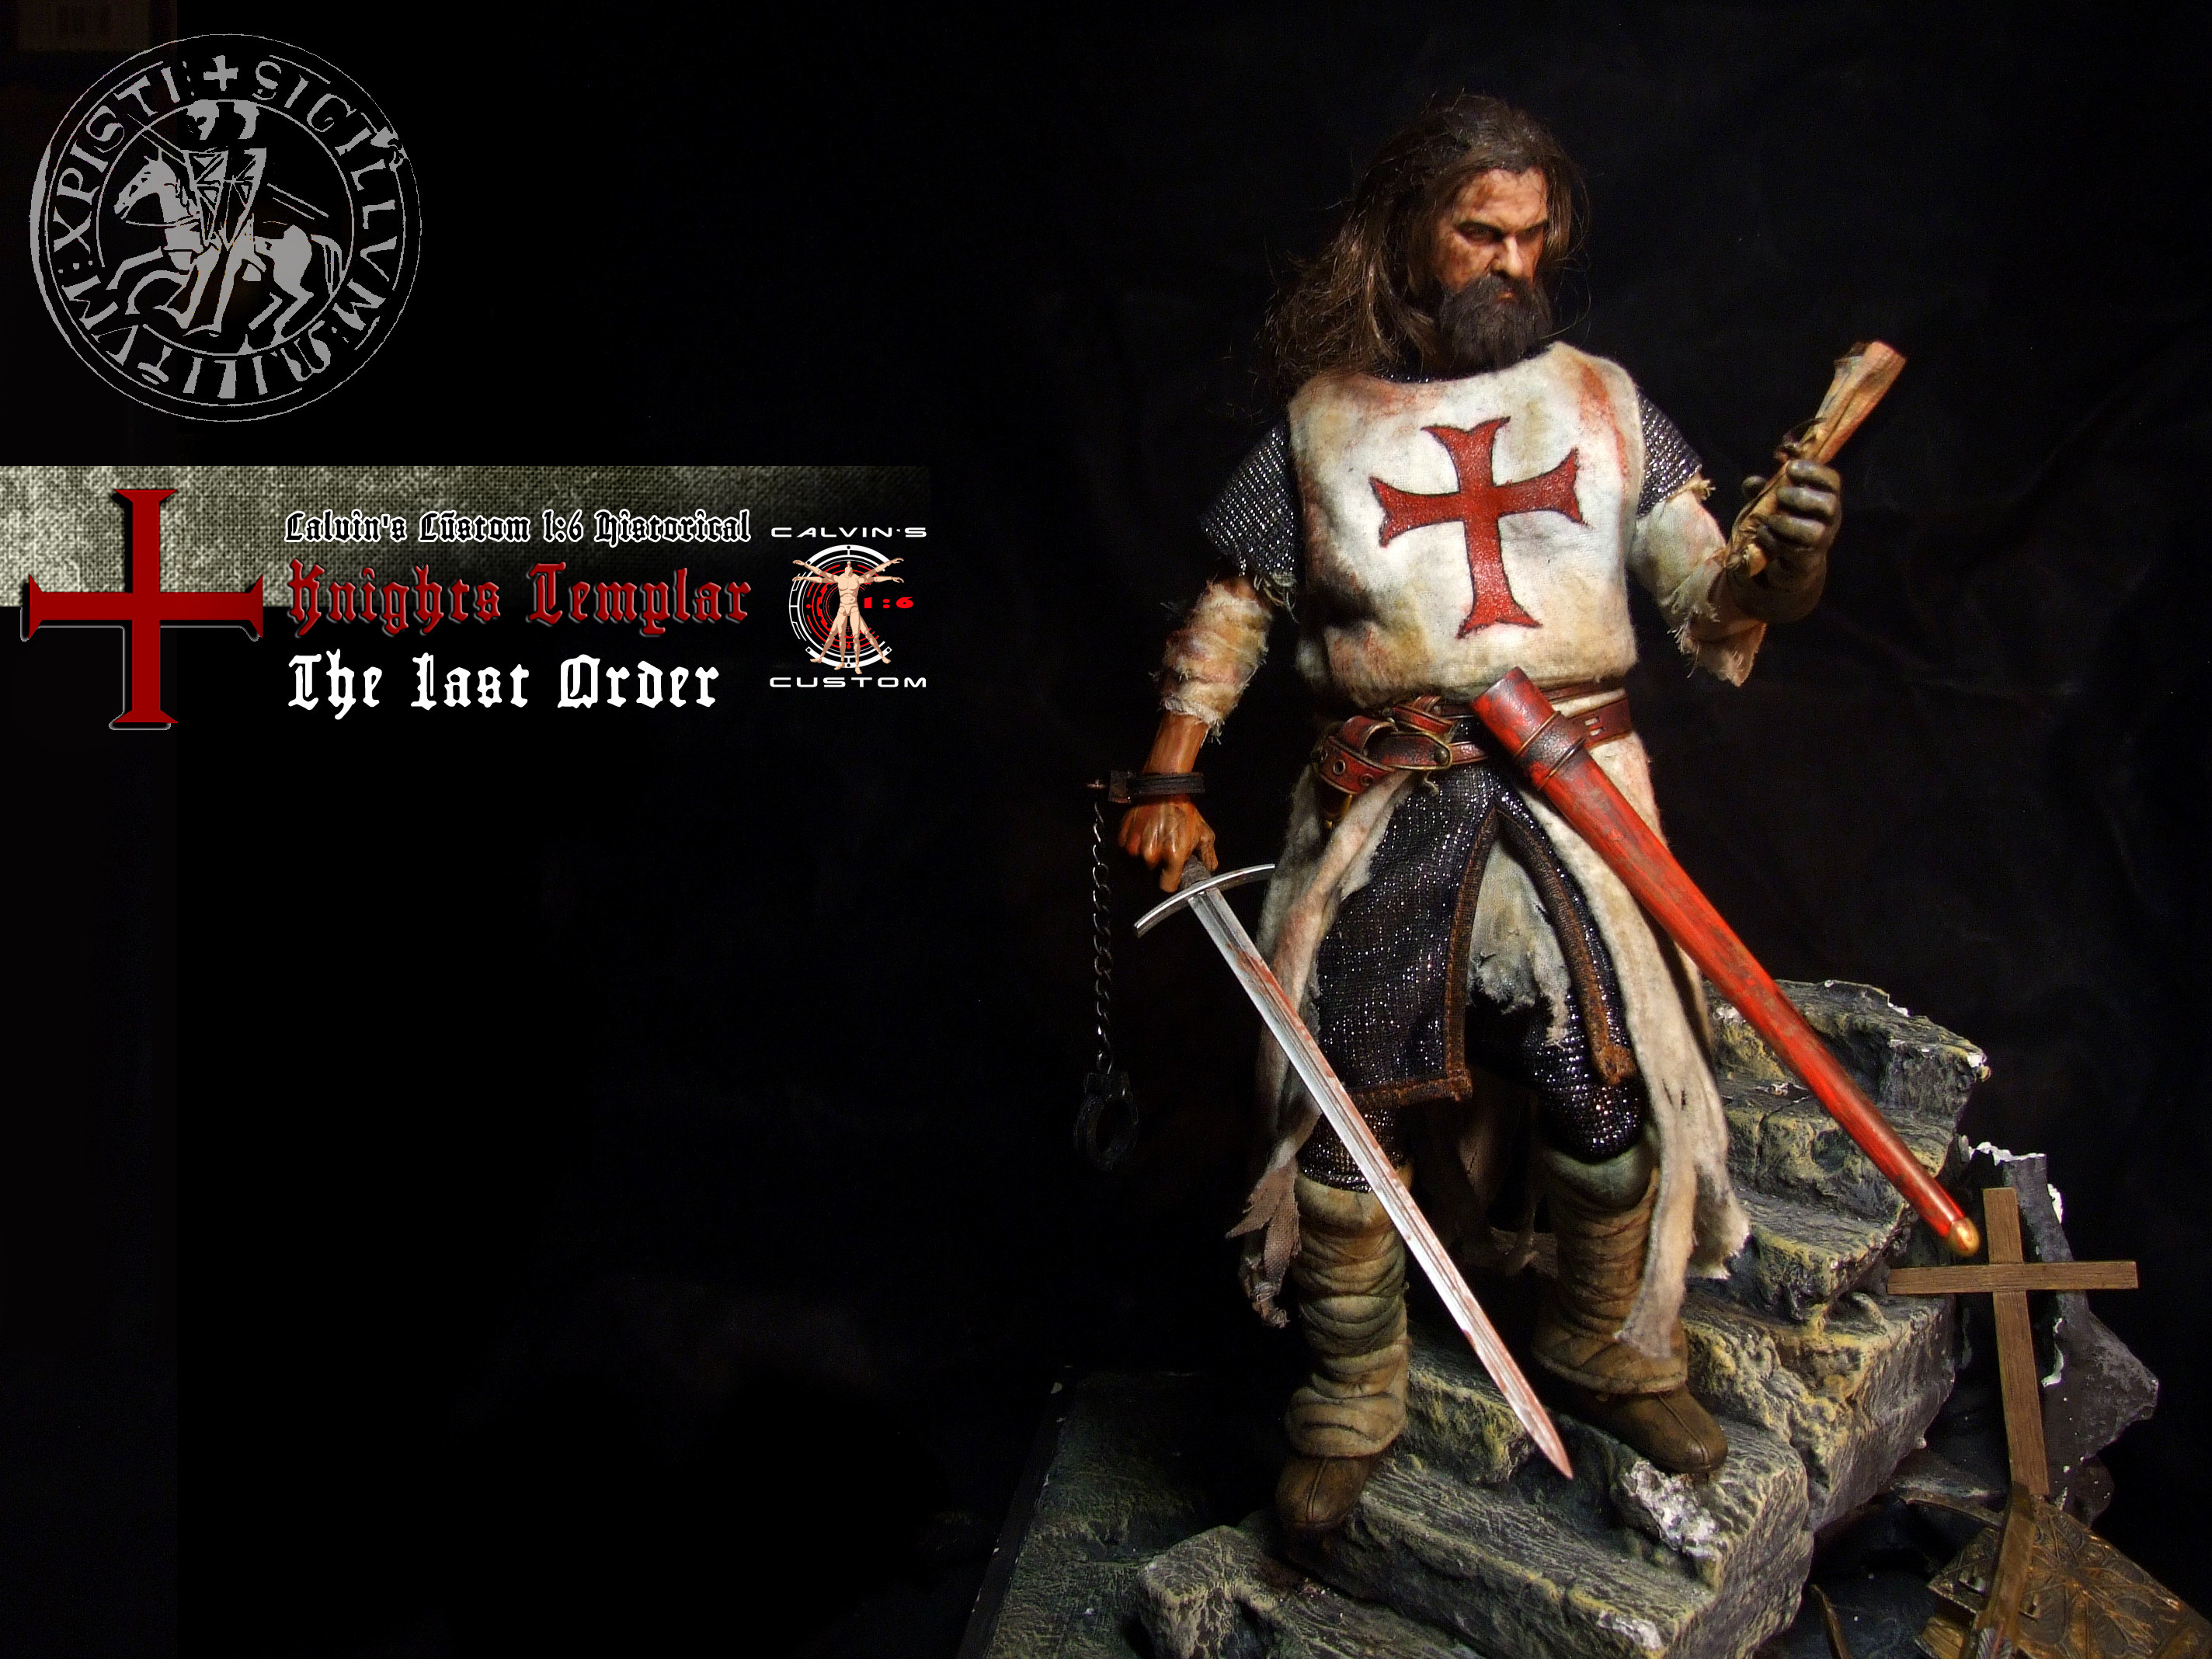 """Res: 2848x2136, Assassin's creed: Assassin or Templar images Calvin's Custom 1:6 one sixth  scale Historical Figure: """"Knights Templar The Last Order"""" custom figur HD  ..."""